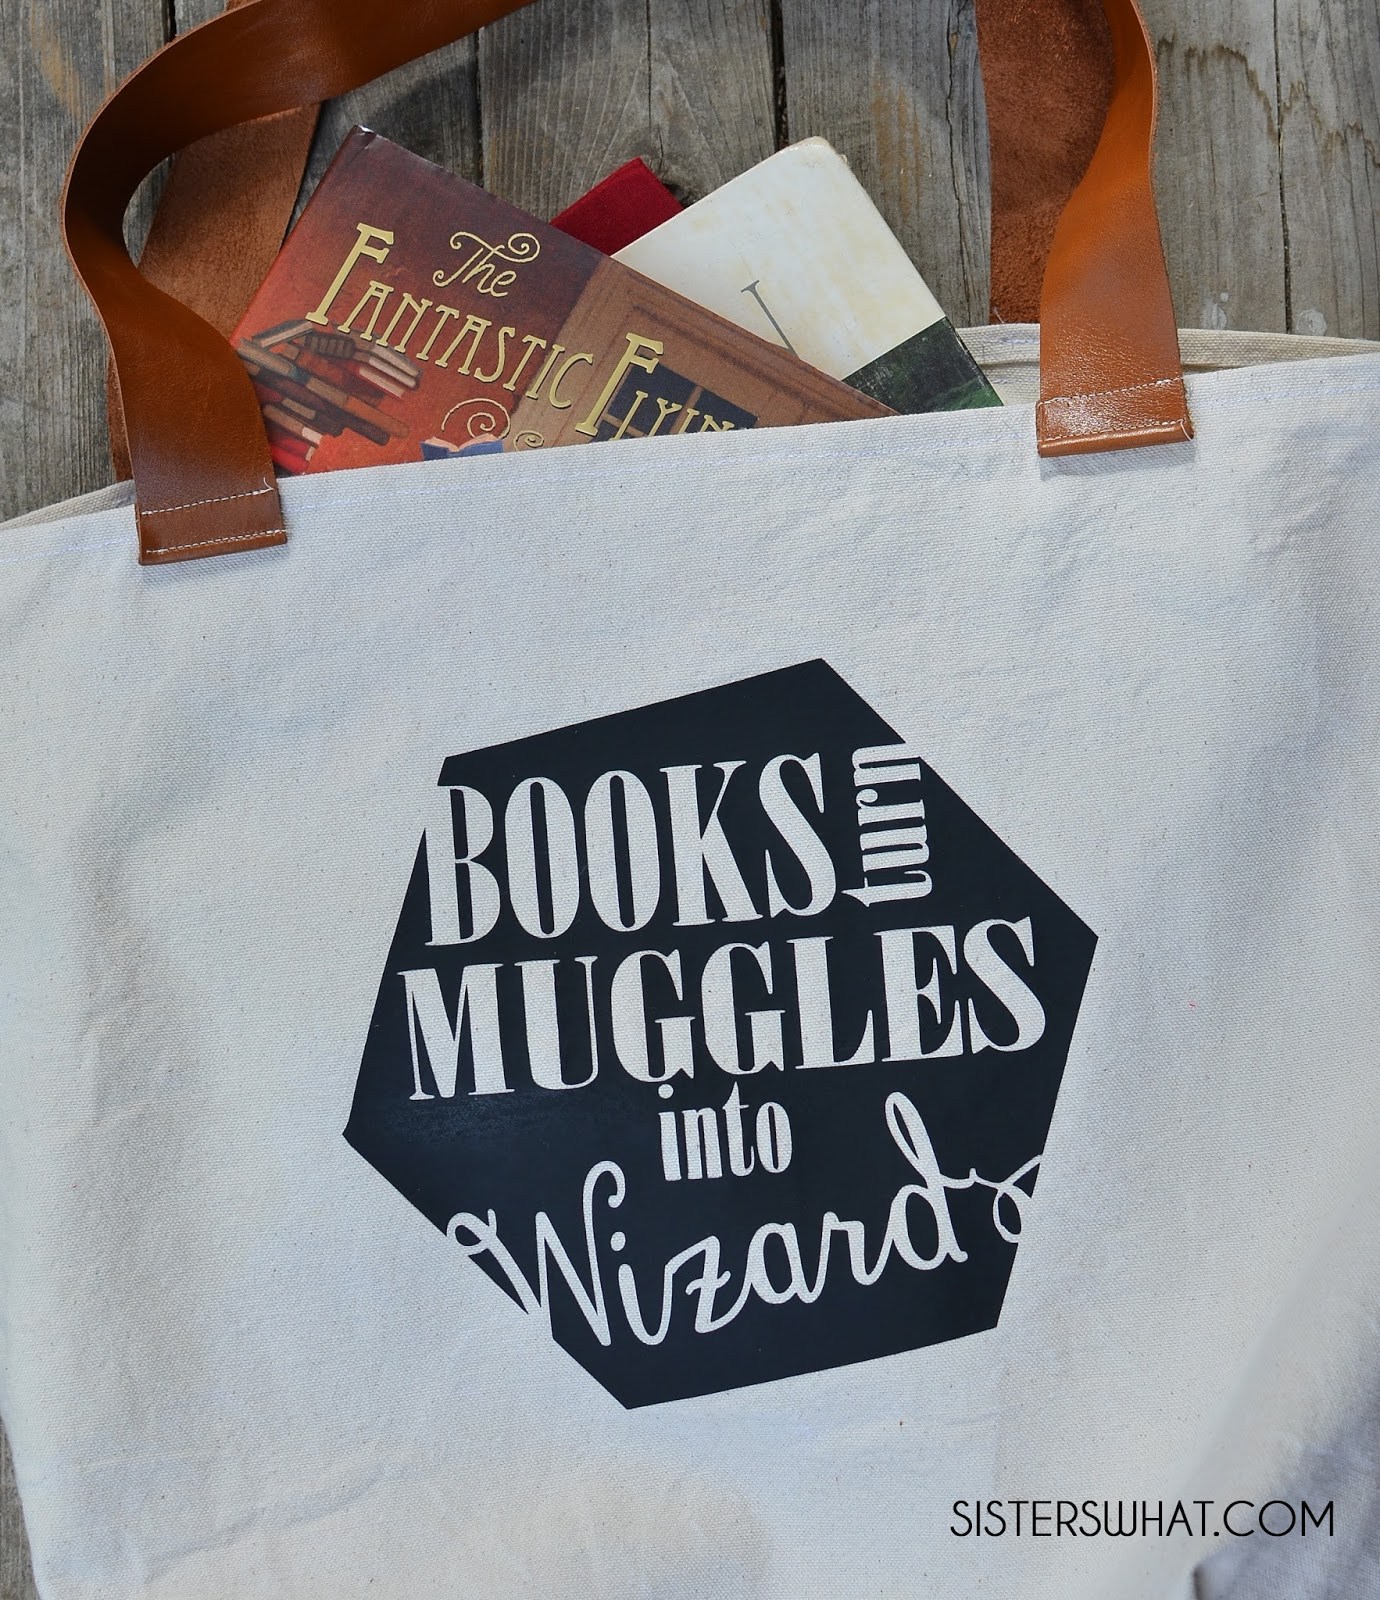 library book bag: books turn muggles into wizards